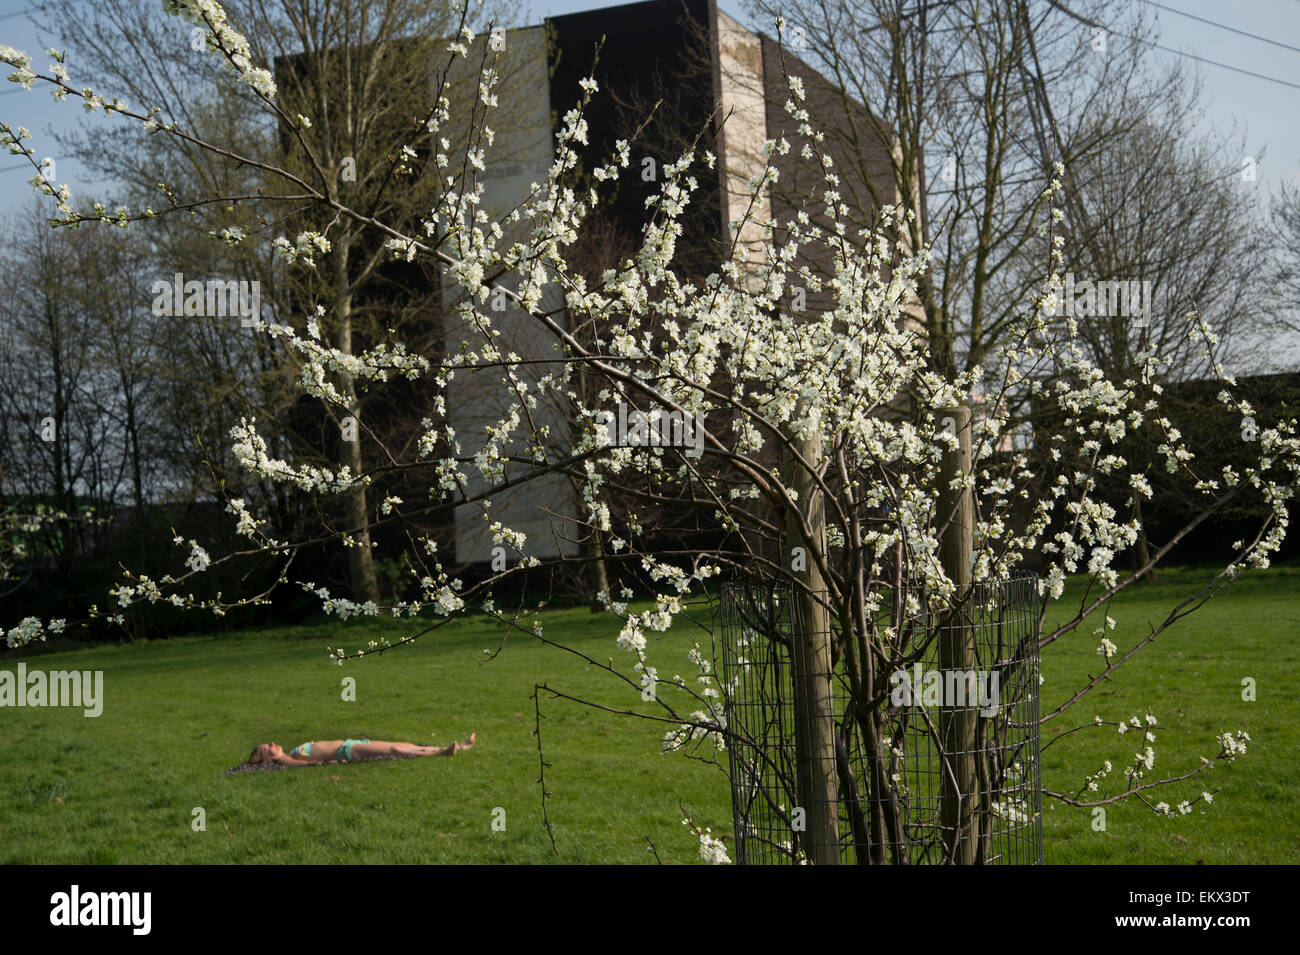 Hackney Spring 2015. Sunbather in urban setting with and spring blossom, Millfields Park - Stock Image